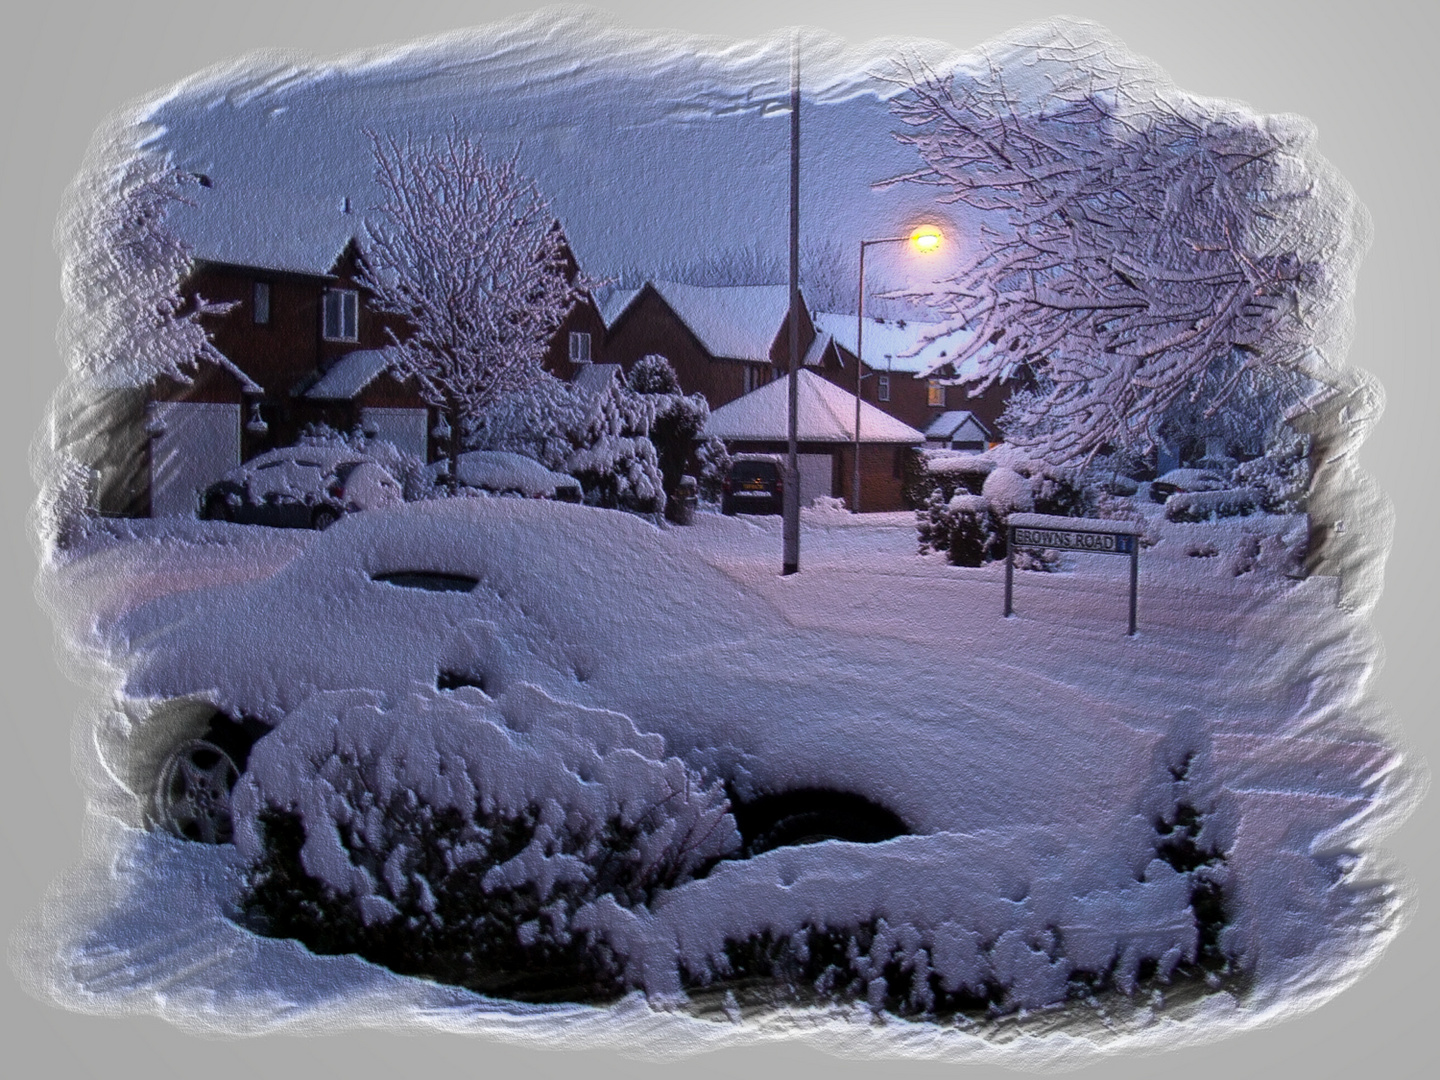 Snow coverded drive